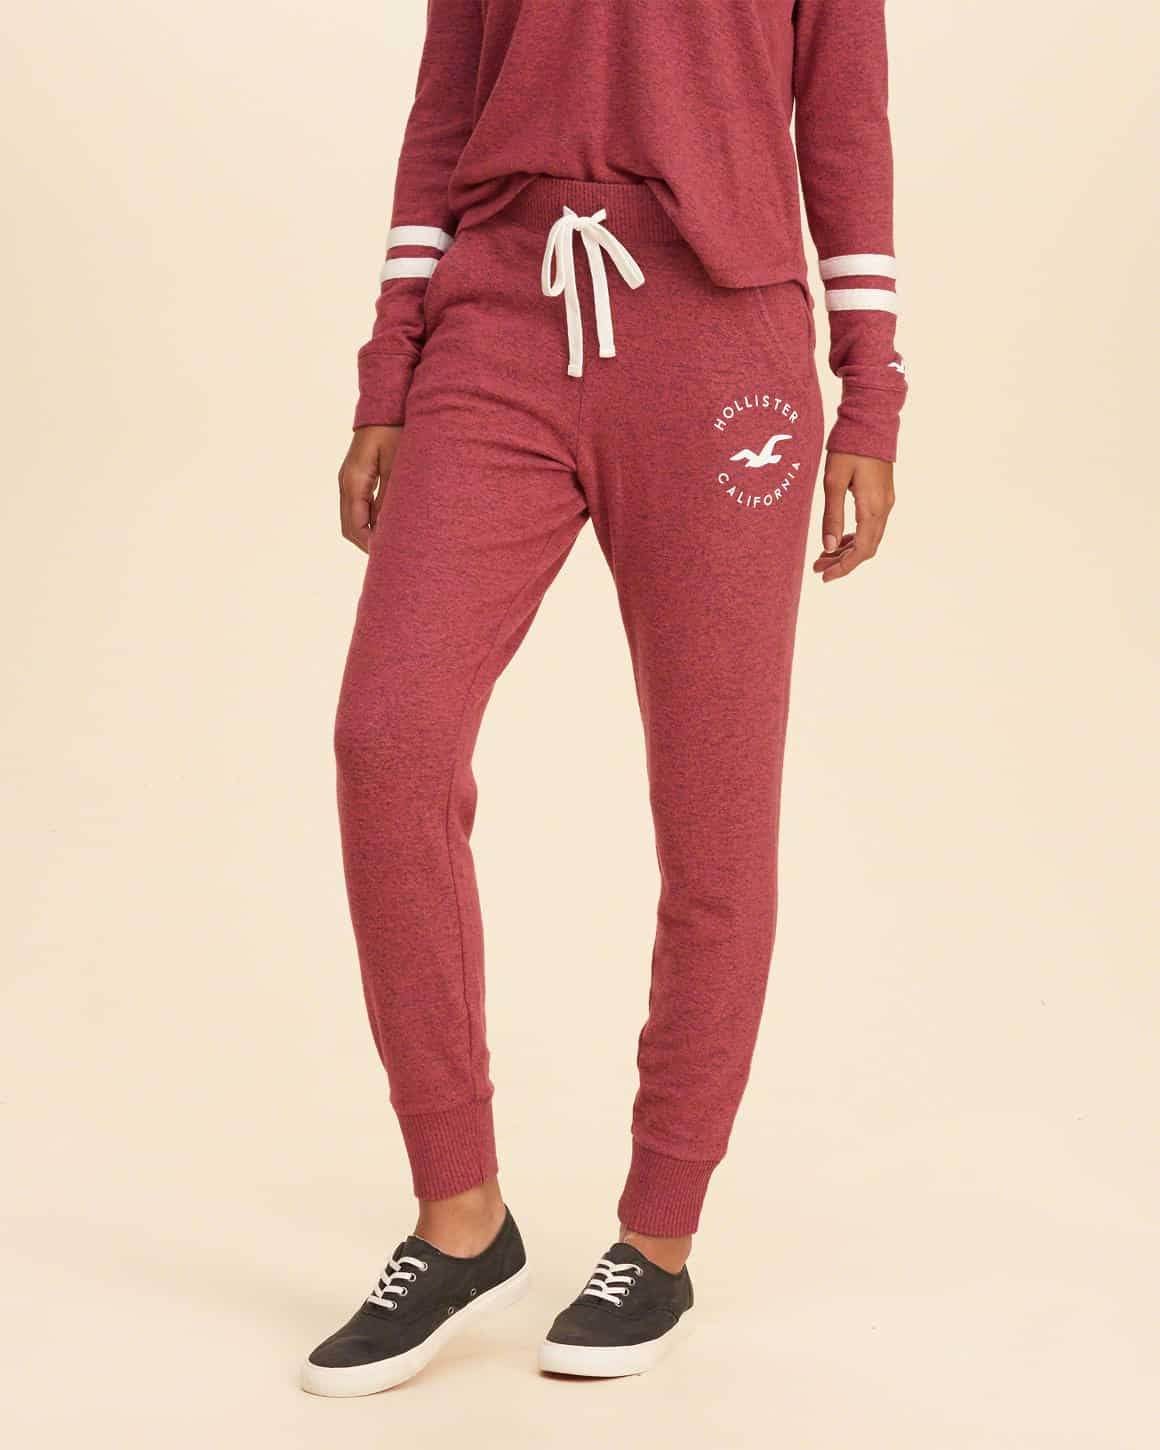 how to wear joggers - matchy jogger set that looks like pajamas